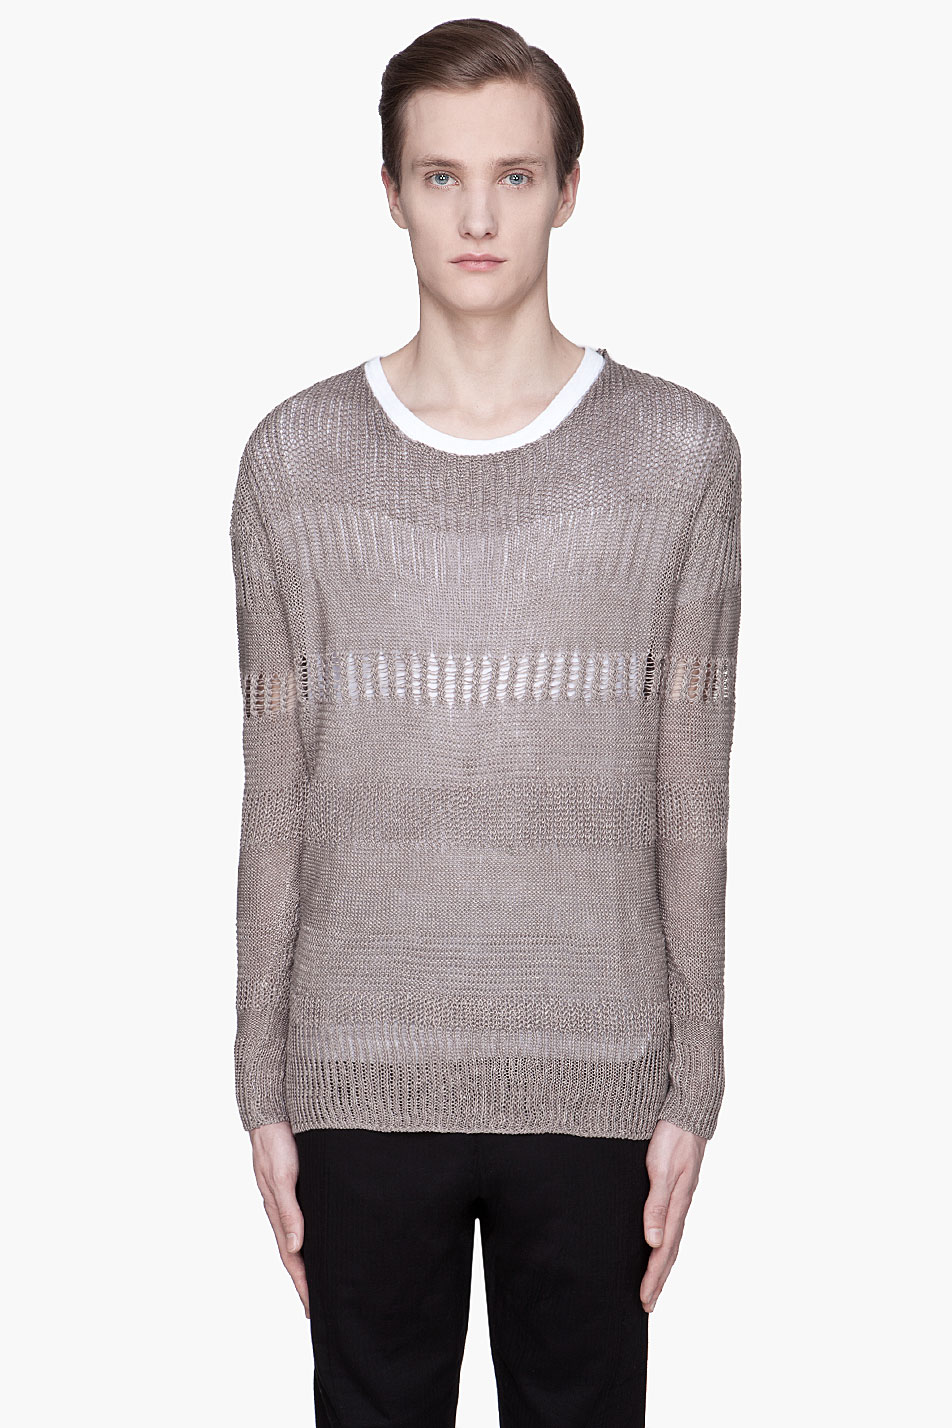 Open Knit Sweater Pattern : Robert geller Warm Grey Open Knit Crewneck Sweater in Gray ...